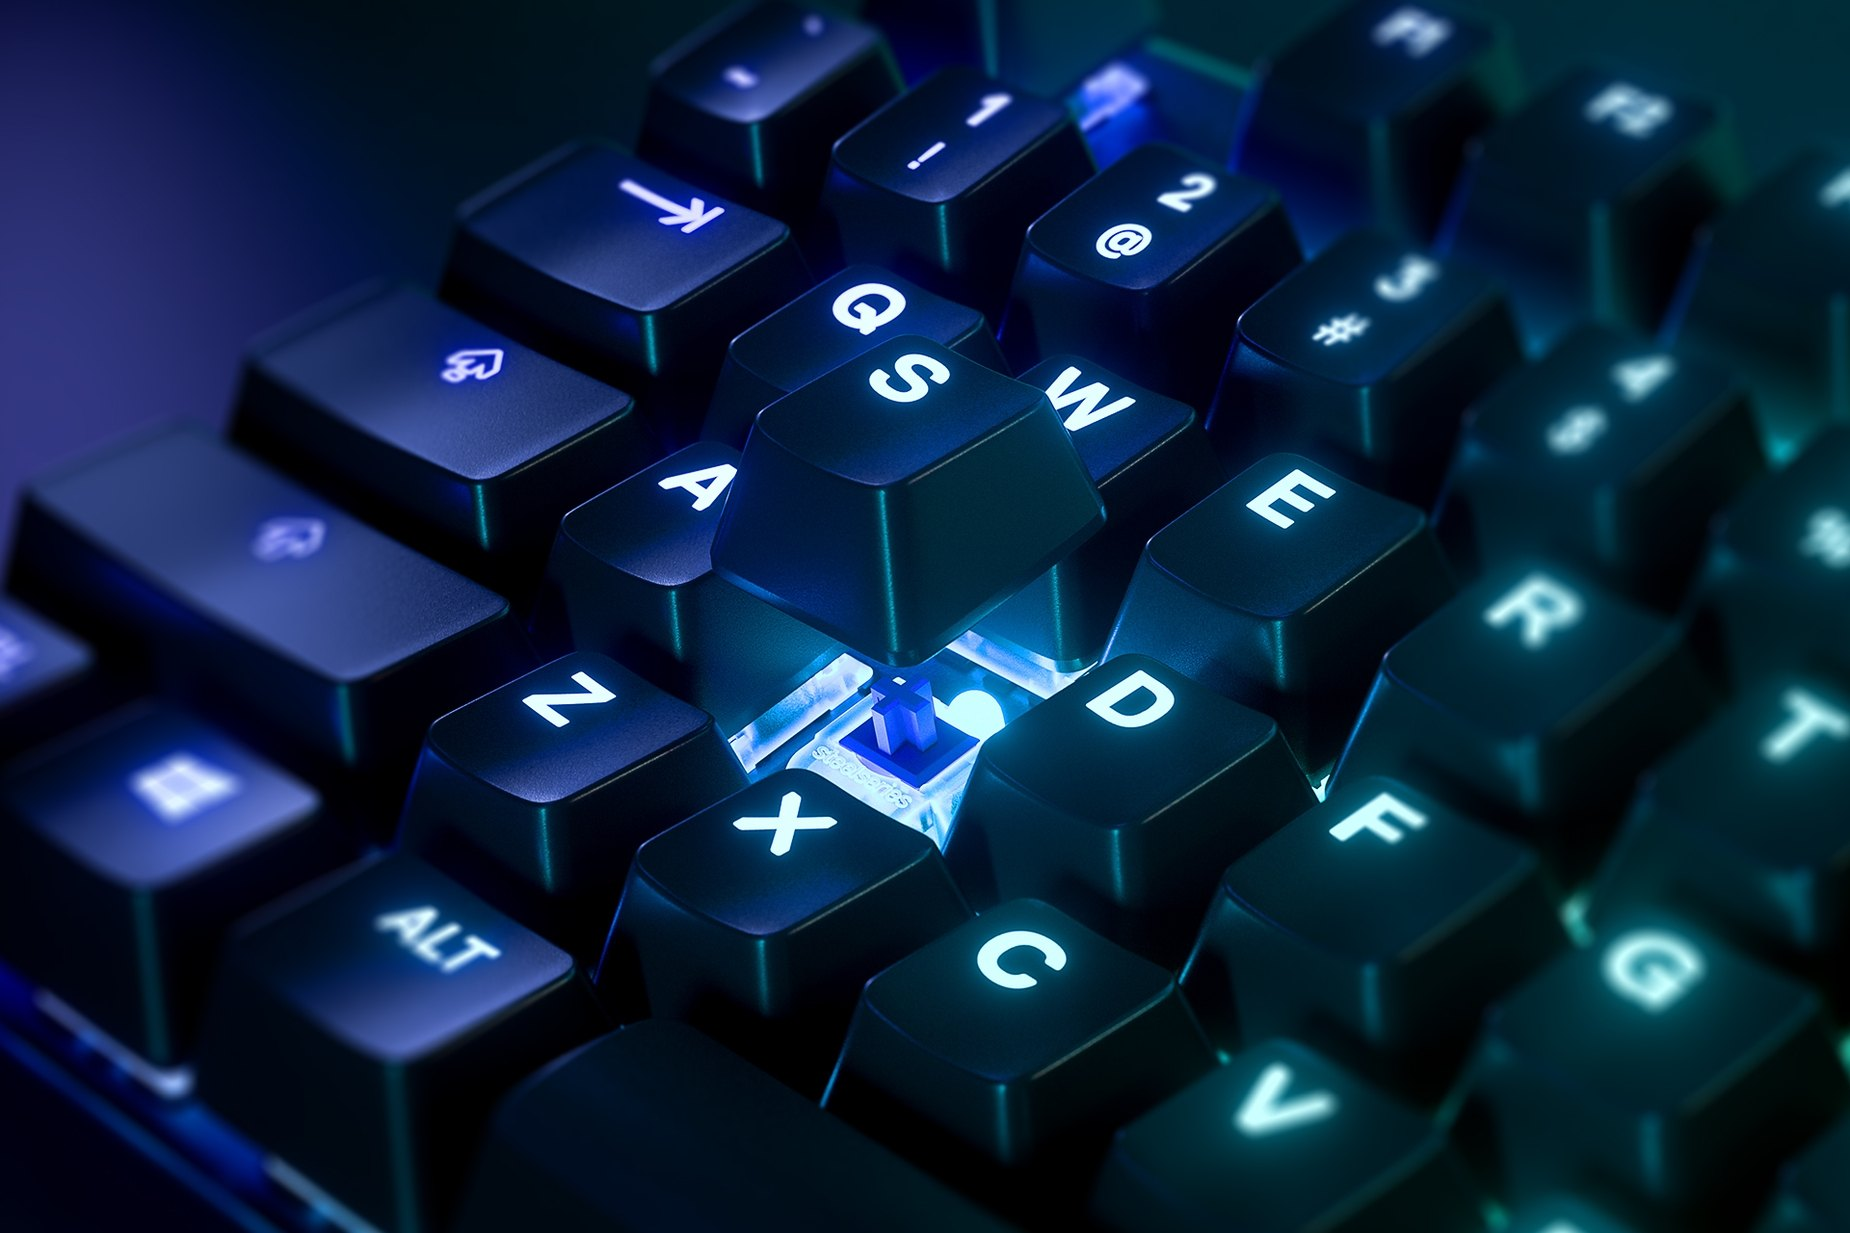 Zoomed in view of a single key on the UK English - Apex 7 (Blue Switch) gaming keyboard, the key is raised up to show the SteelSeries QX2 Mechanical RGB Switch underneath